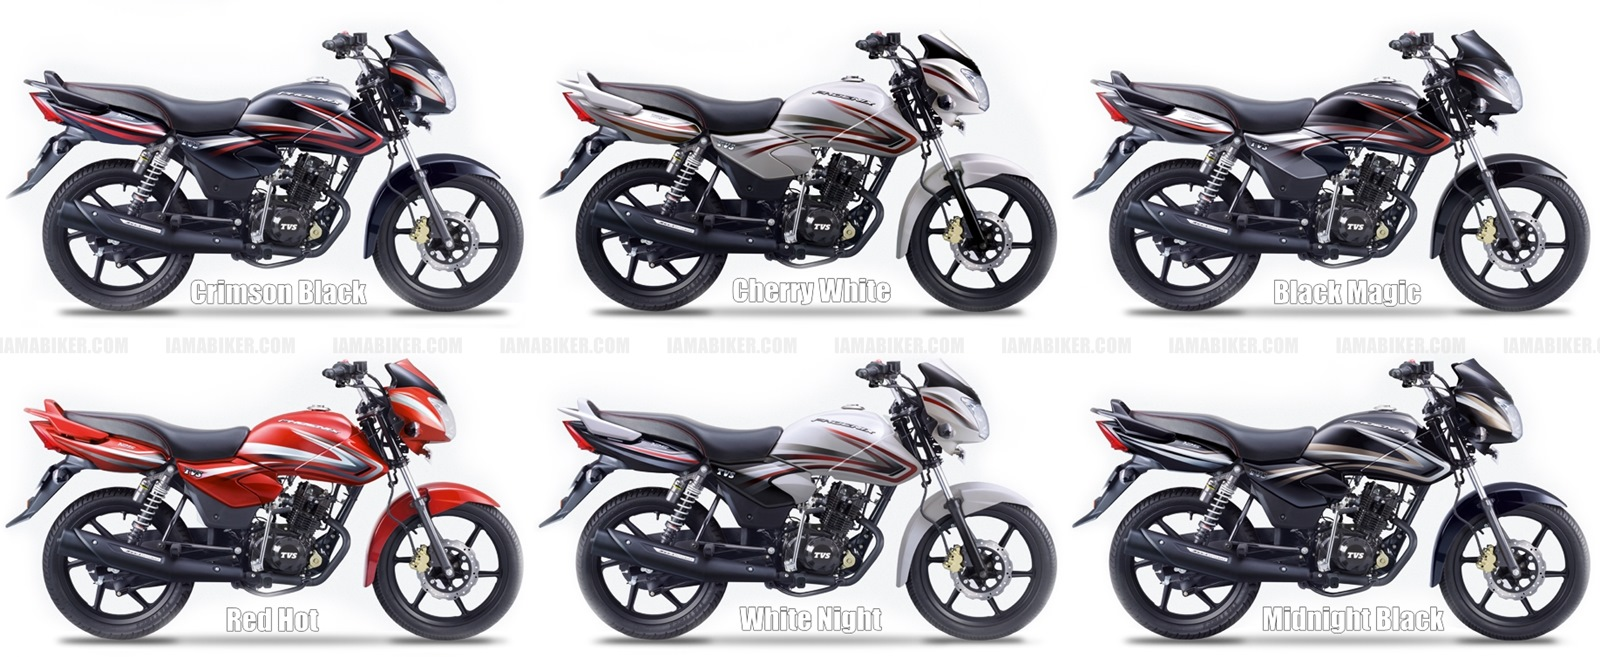 2015 TVS Phoenix 125 all colour options